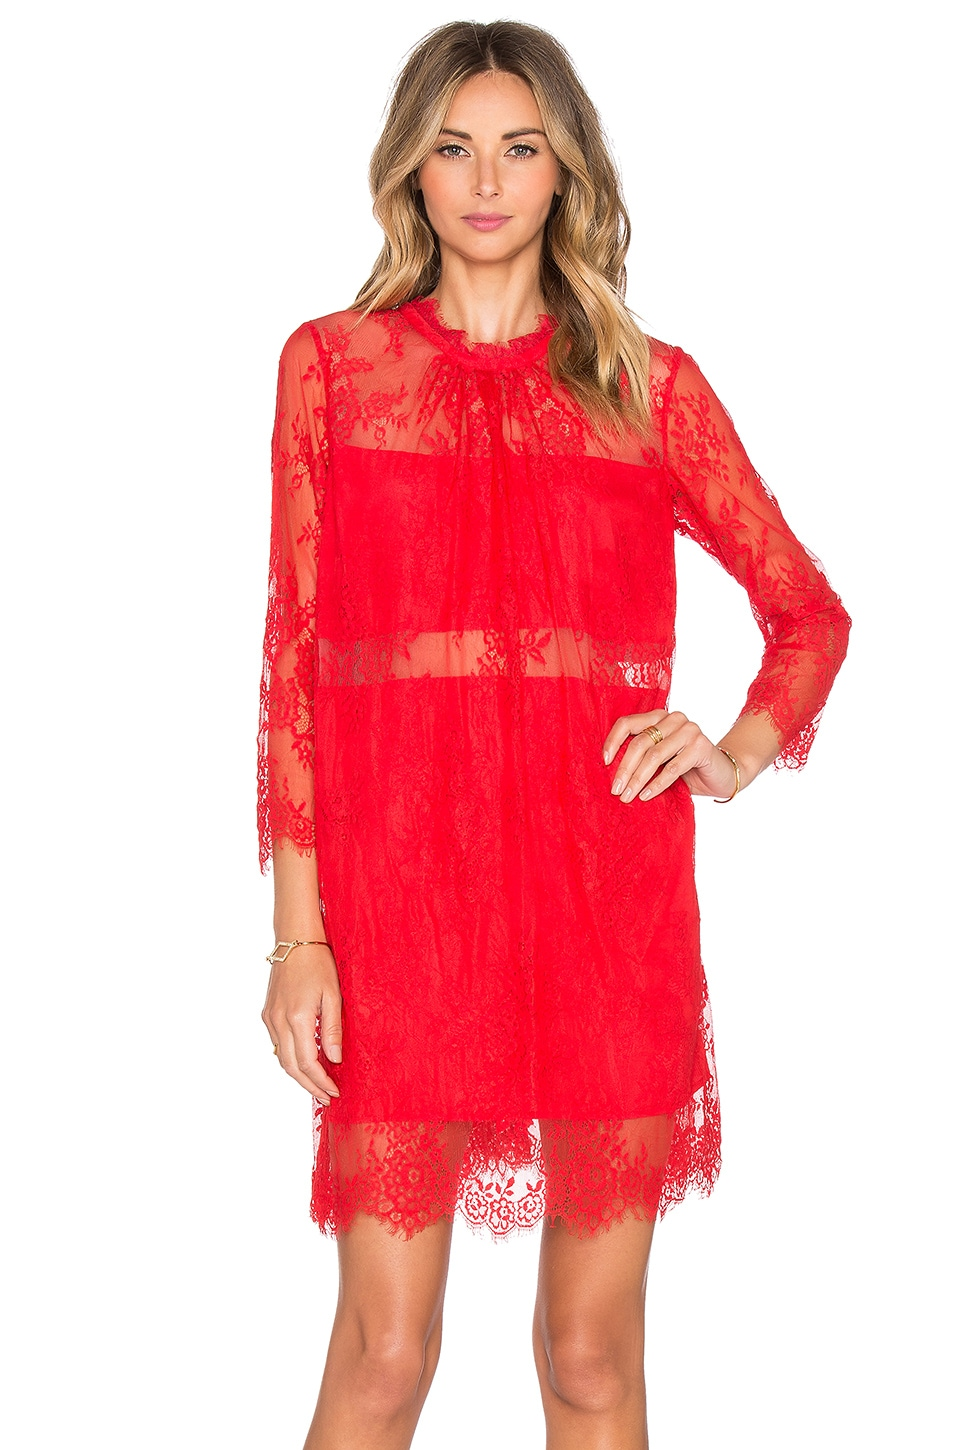 HEARTLOOM x REVOLVE Albie Dress in Scarlet